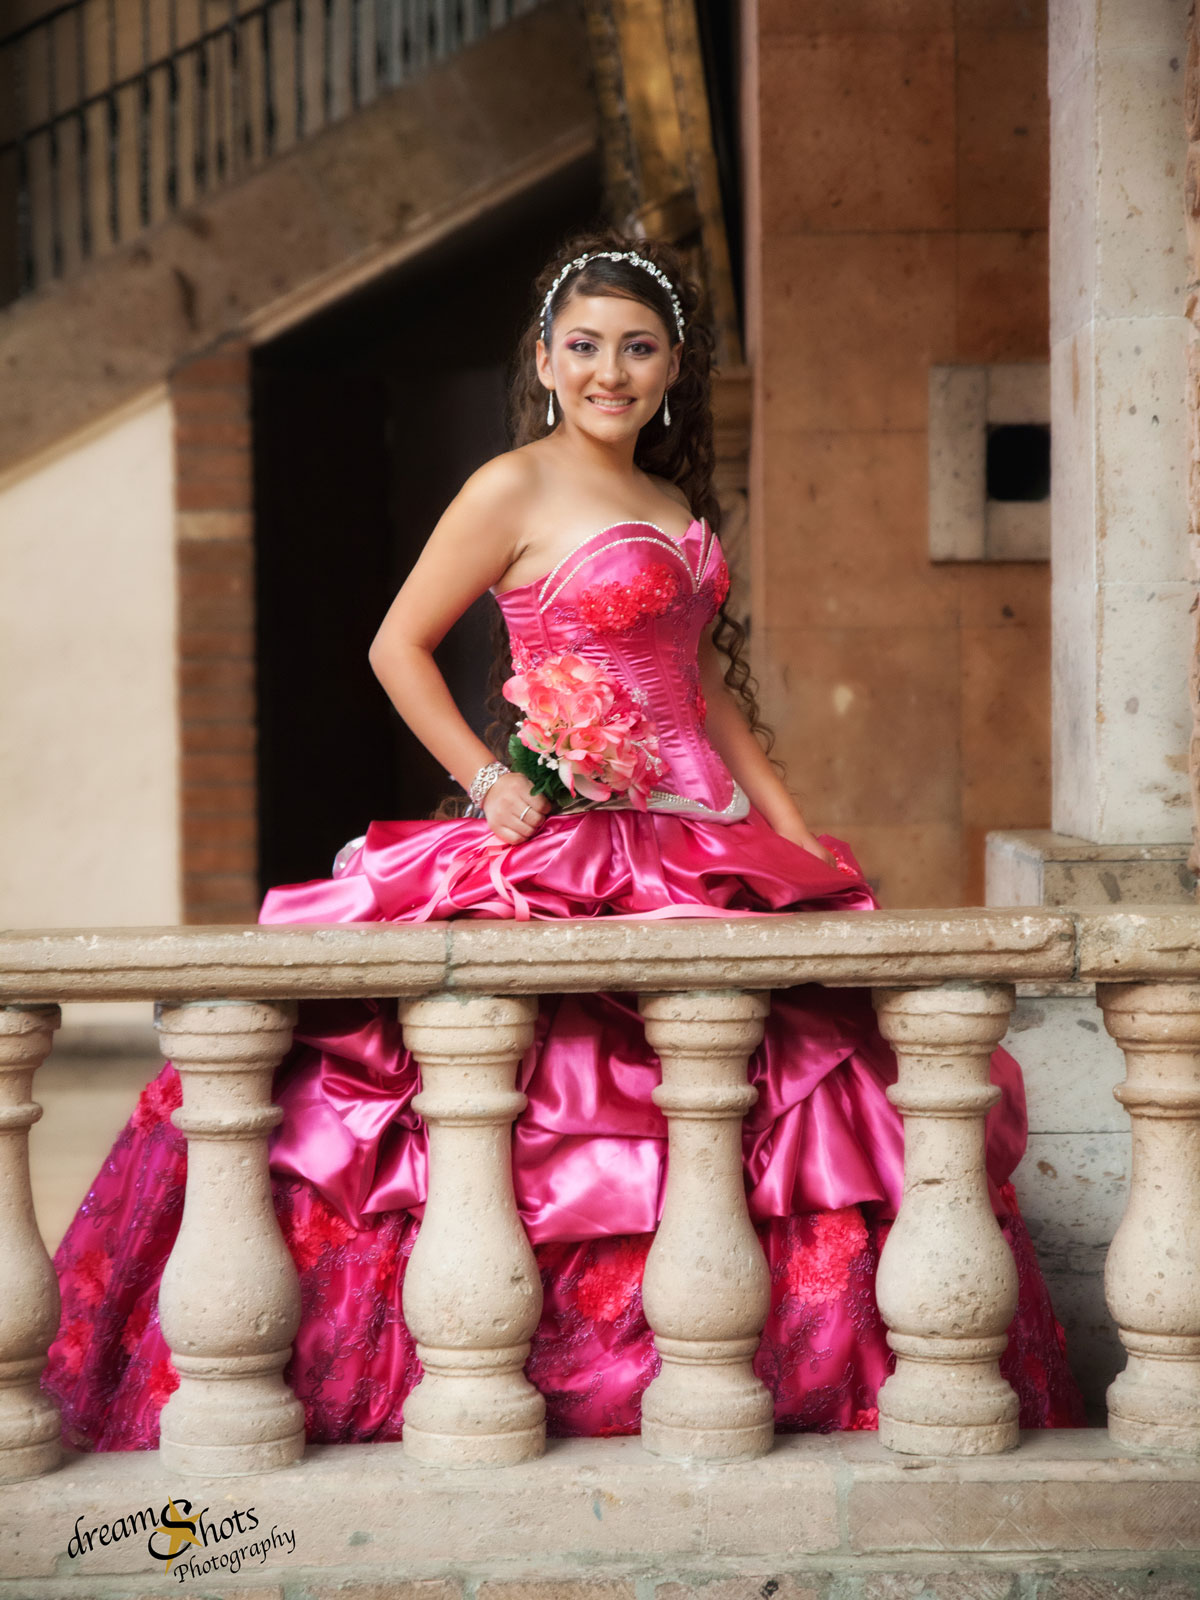 Dreamshots Photography Houston  Wedding and Quinceanera Photography  My Houston Quinceanera